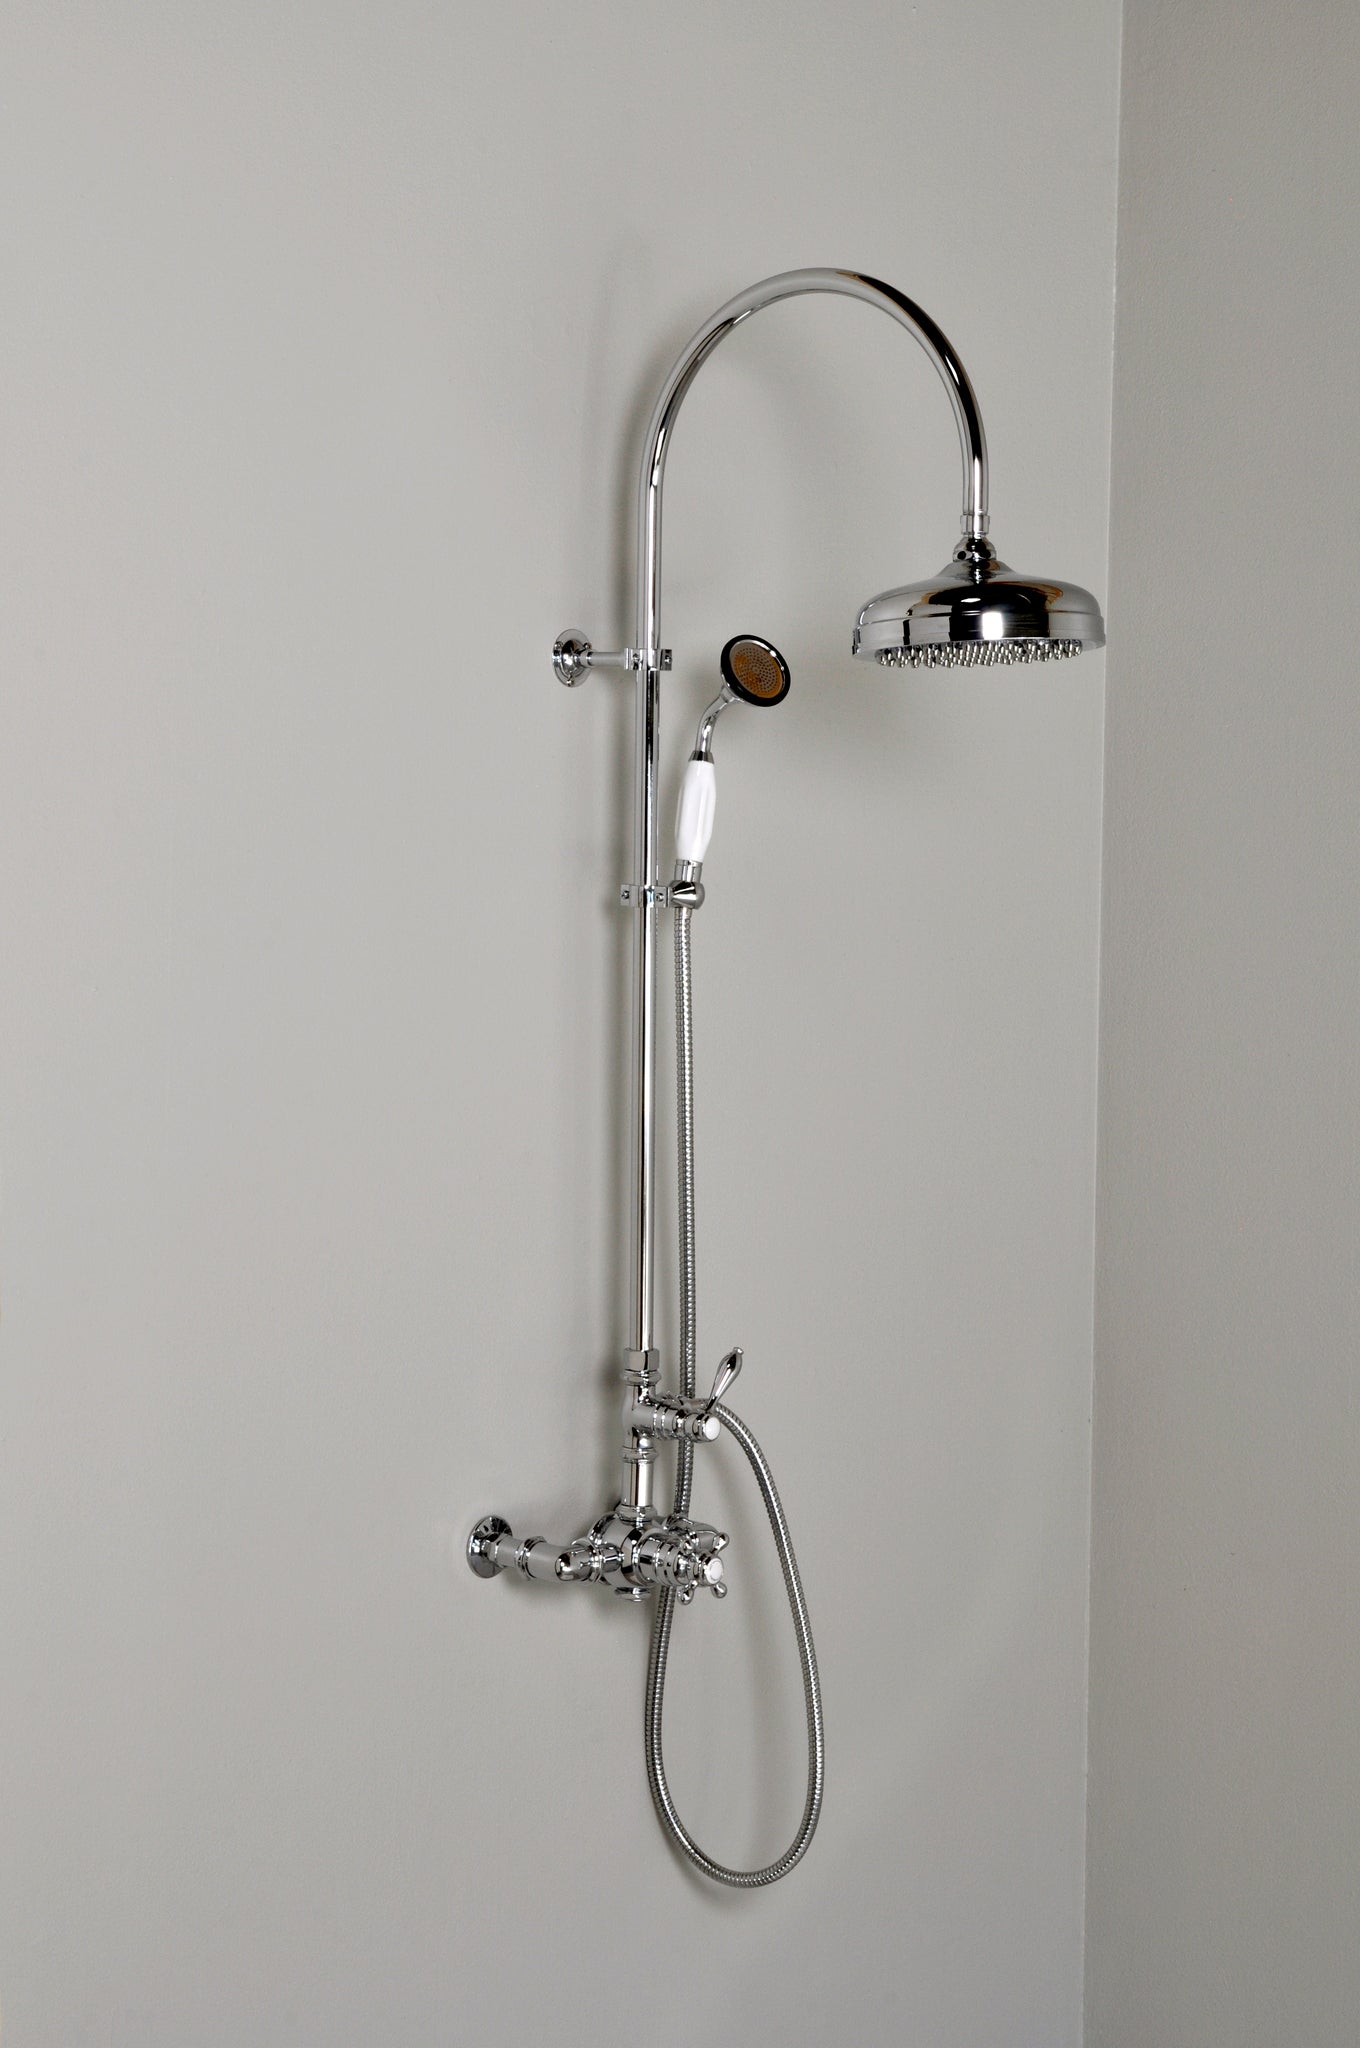 CALGreen Exposed Thermostatic Shower Set with Gooseneck Riser